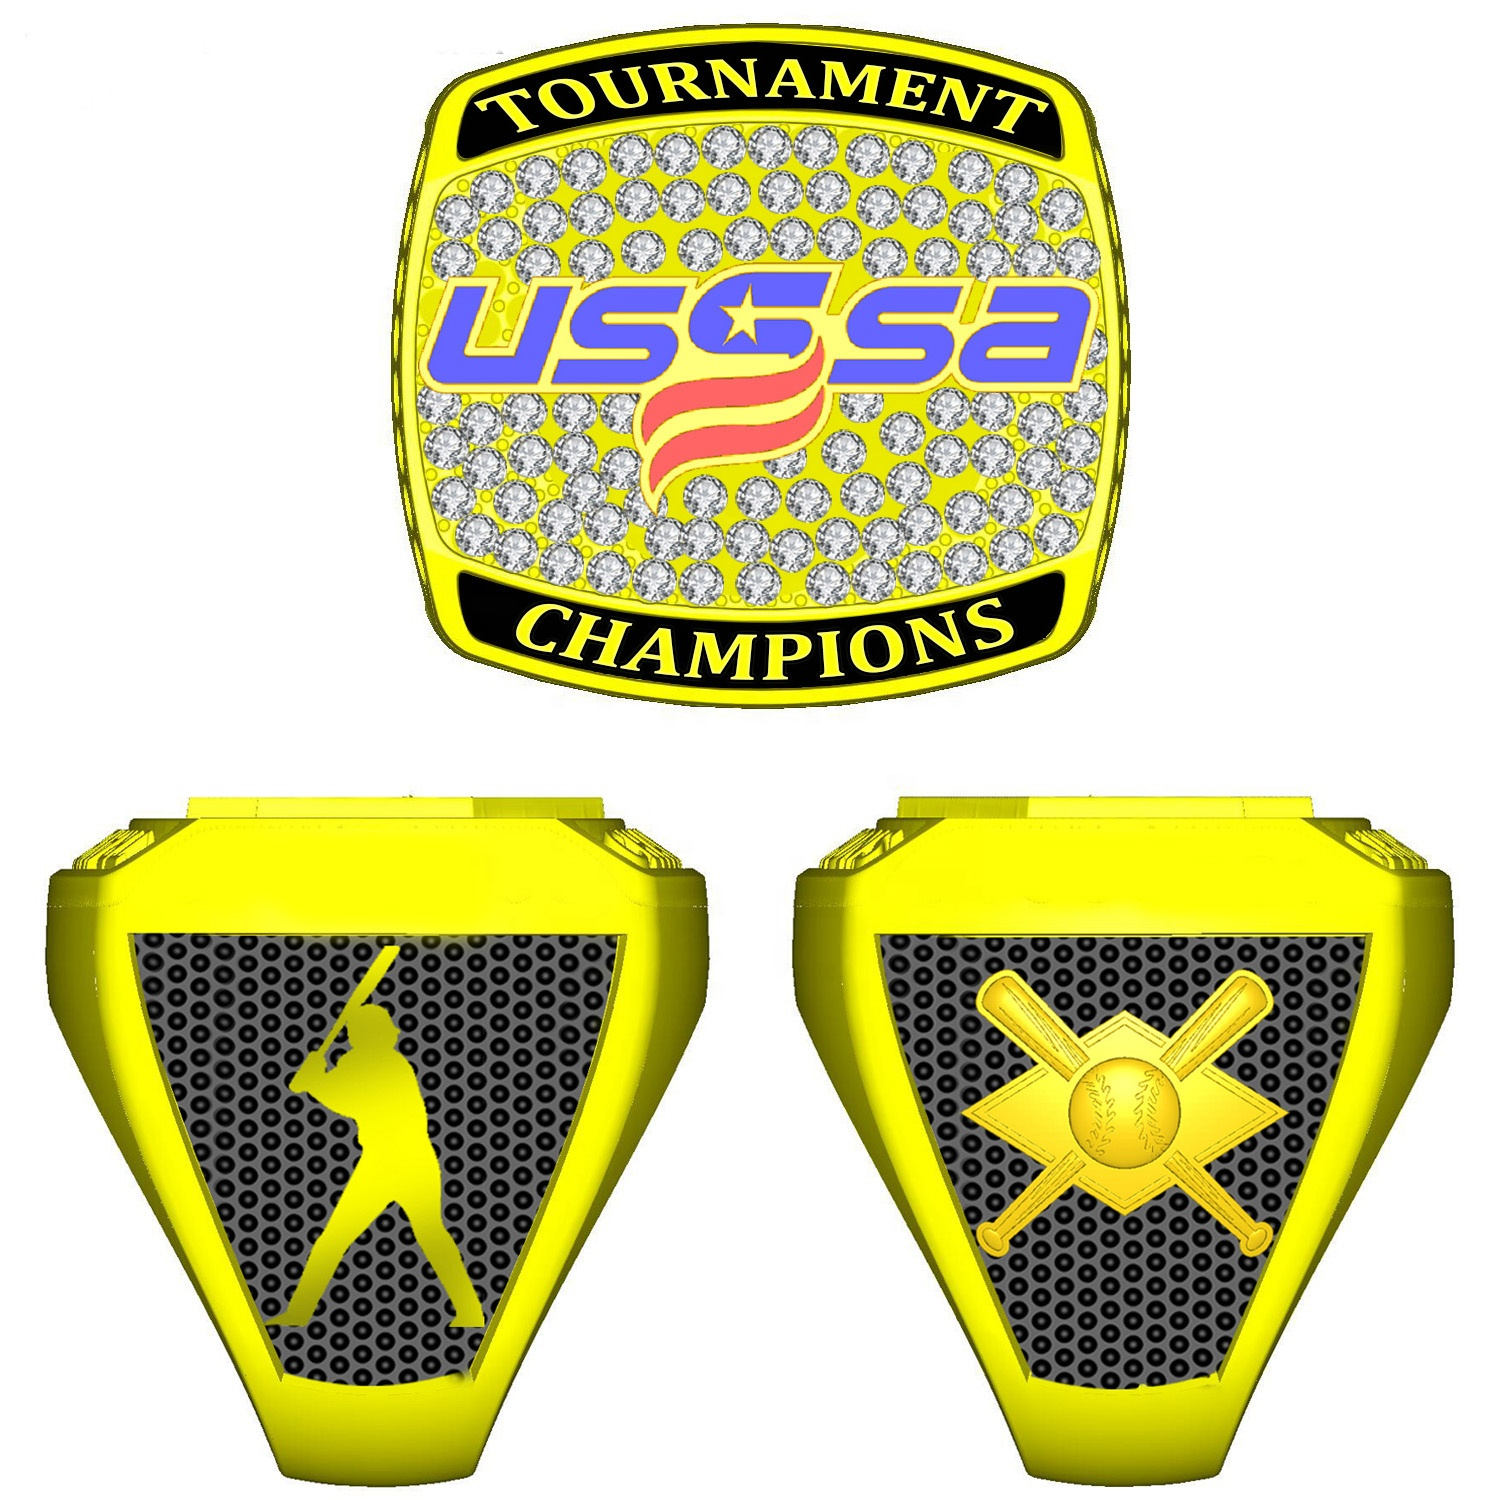 a46be1b888a27 Custom Die-cast Design Your Own Baseball Usssa Championship Ring ...